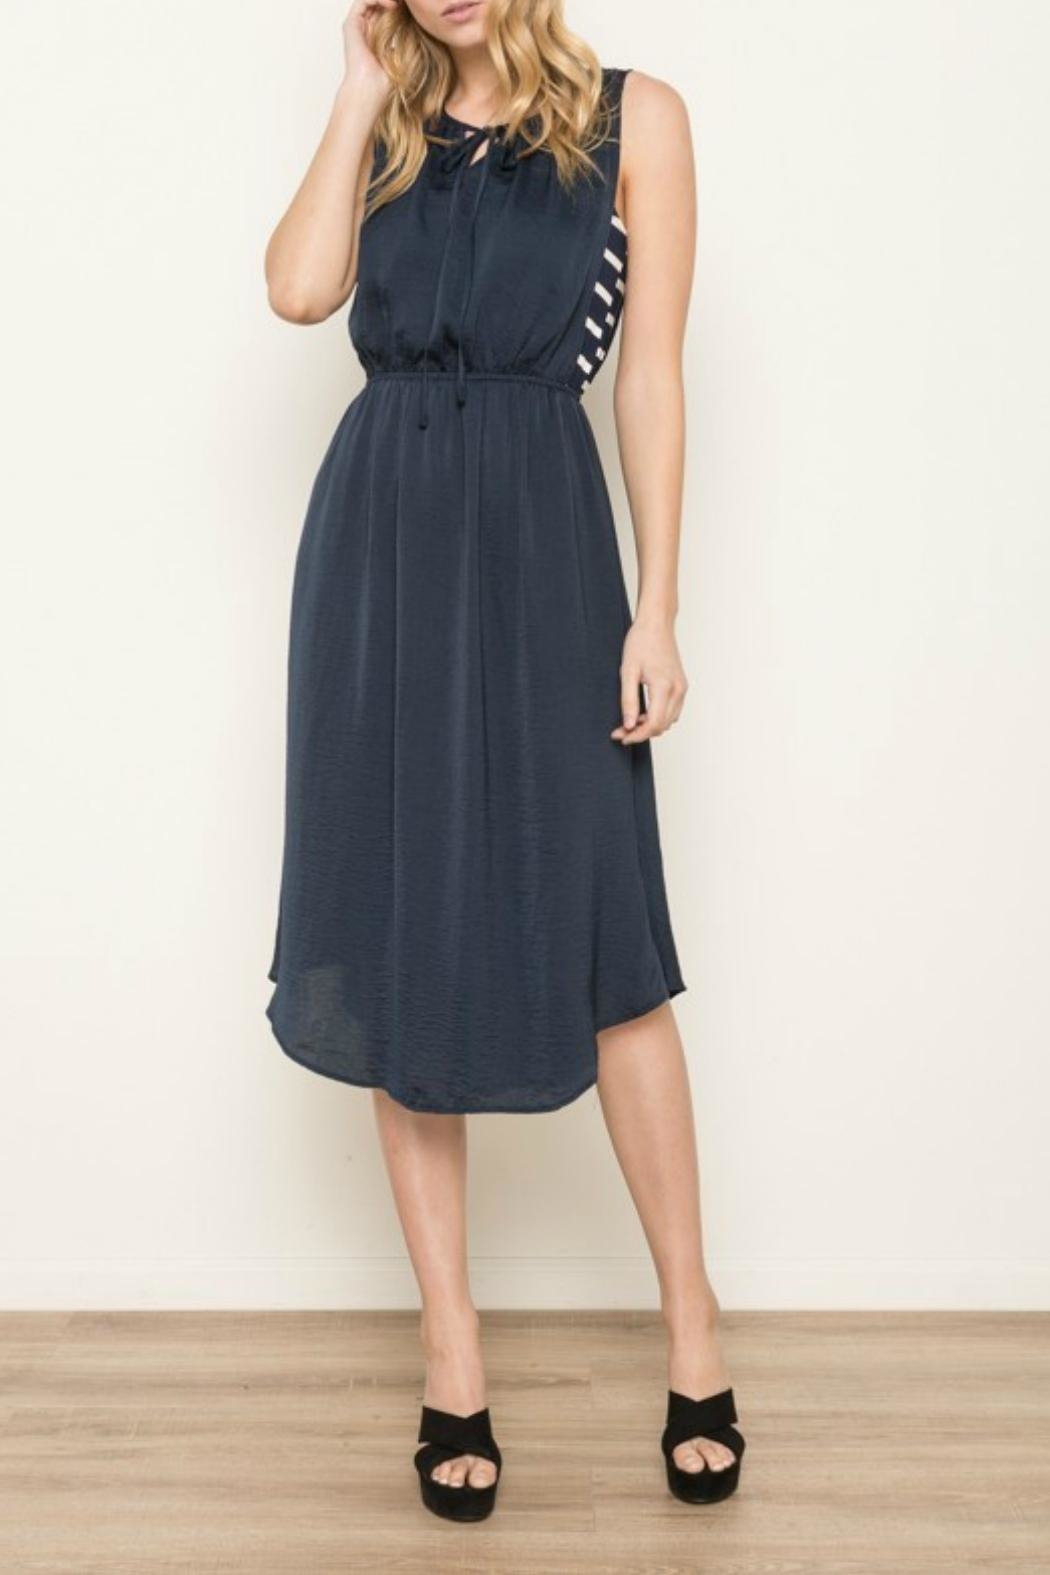 Mystree Navy Striped Dress - Main Image